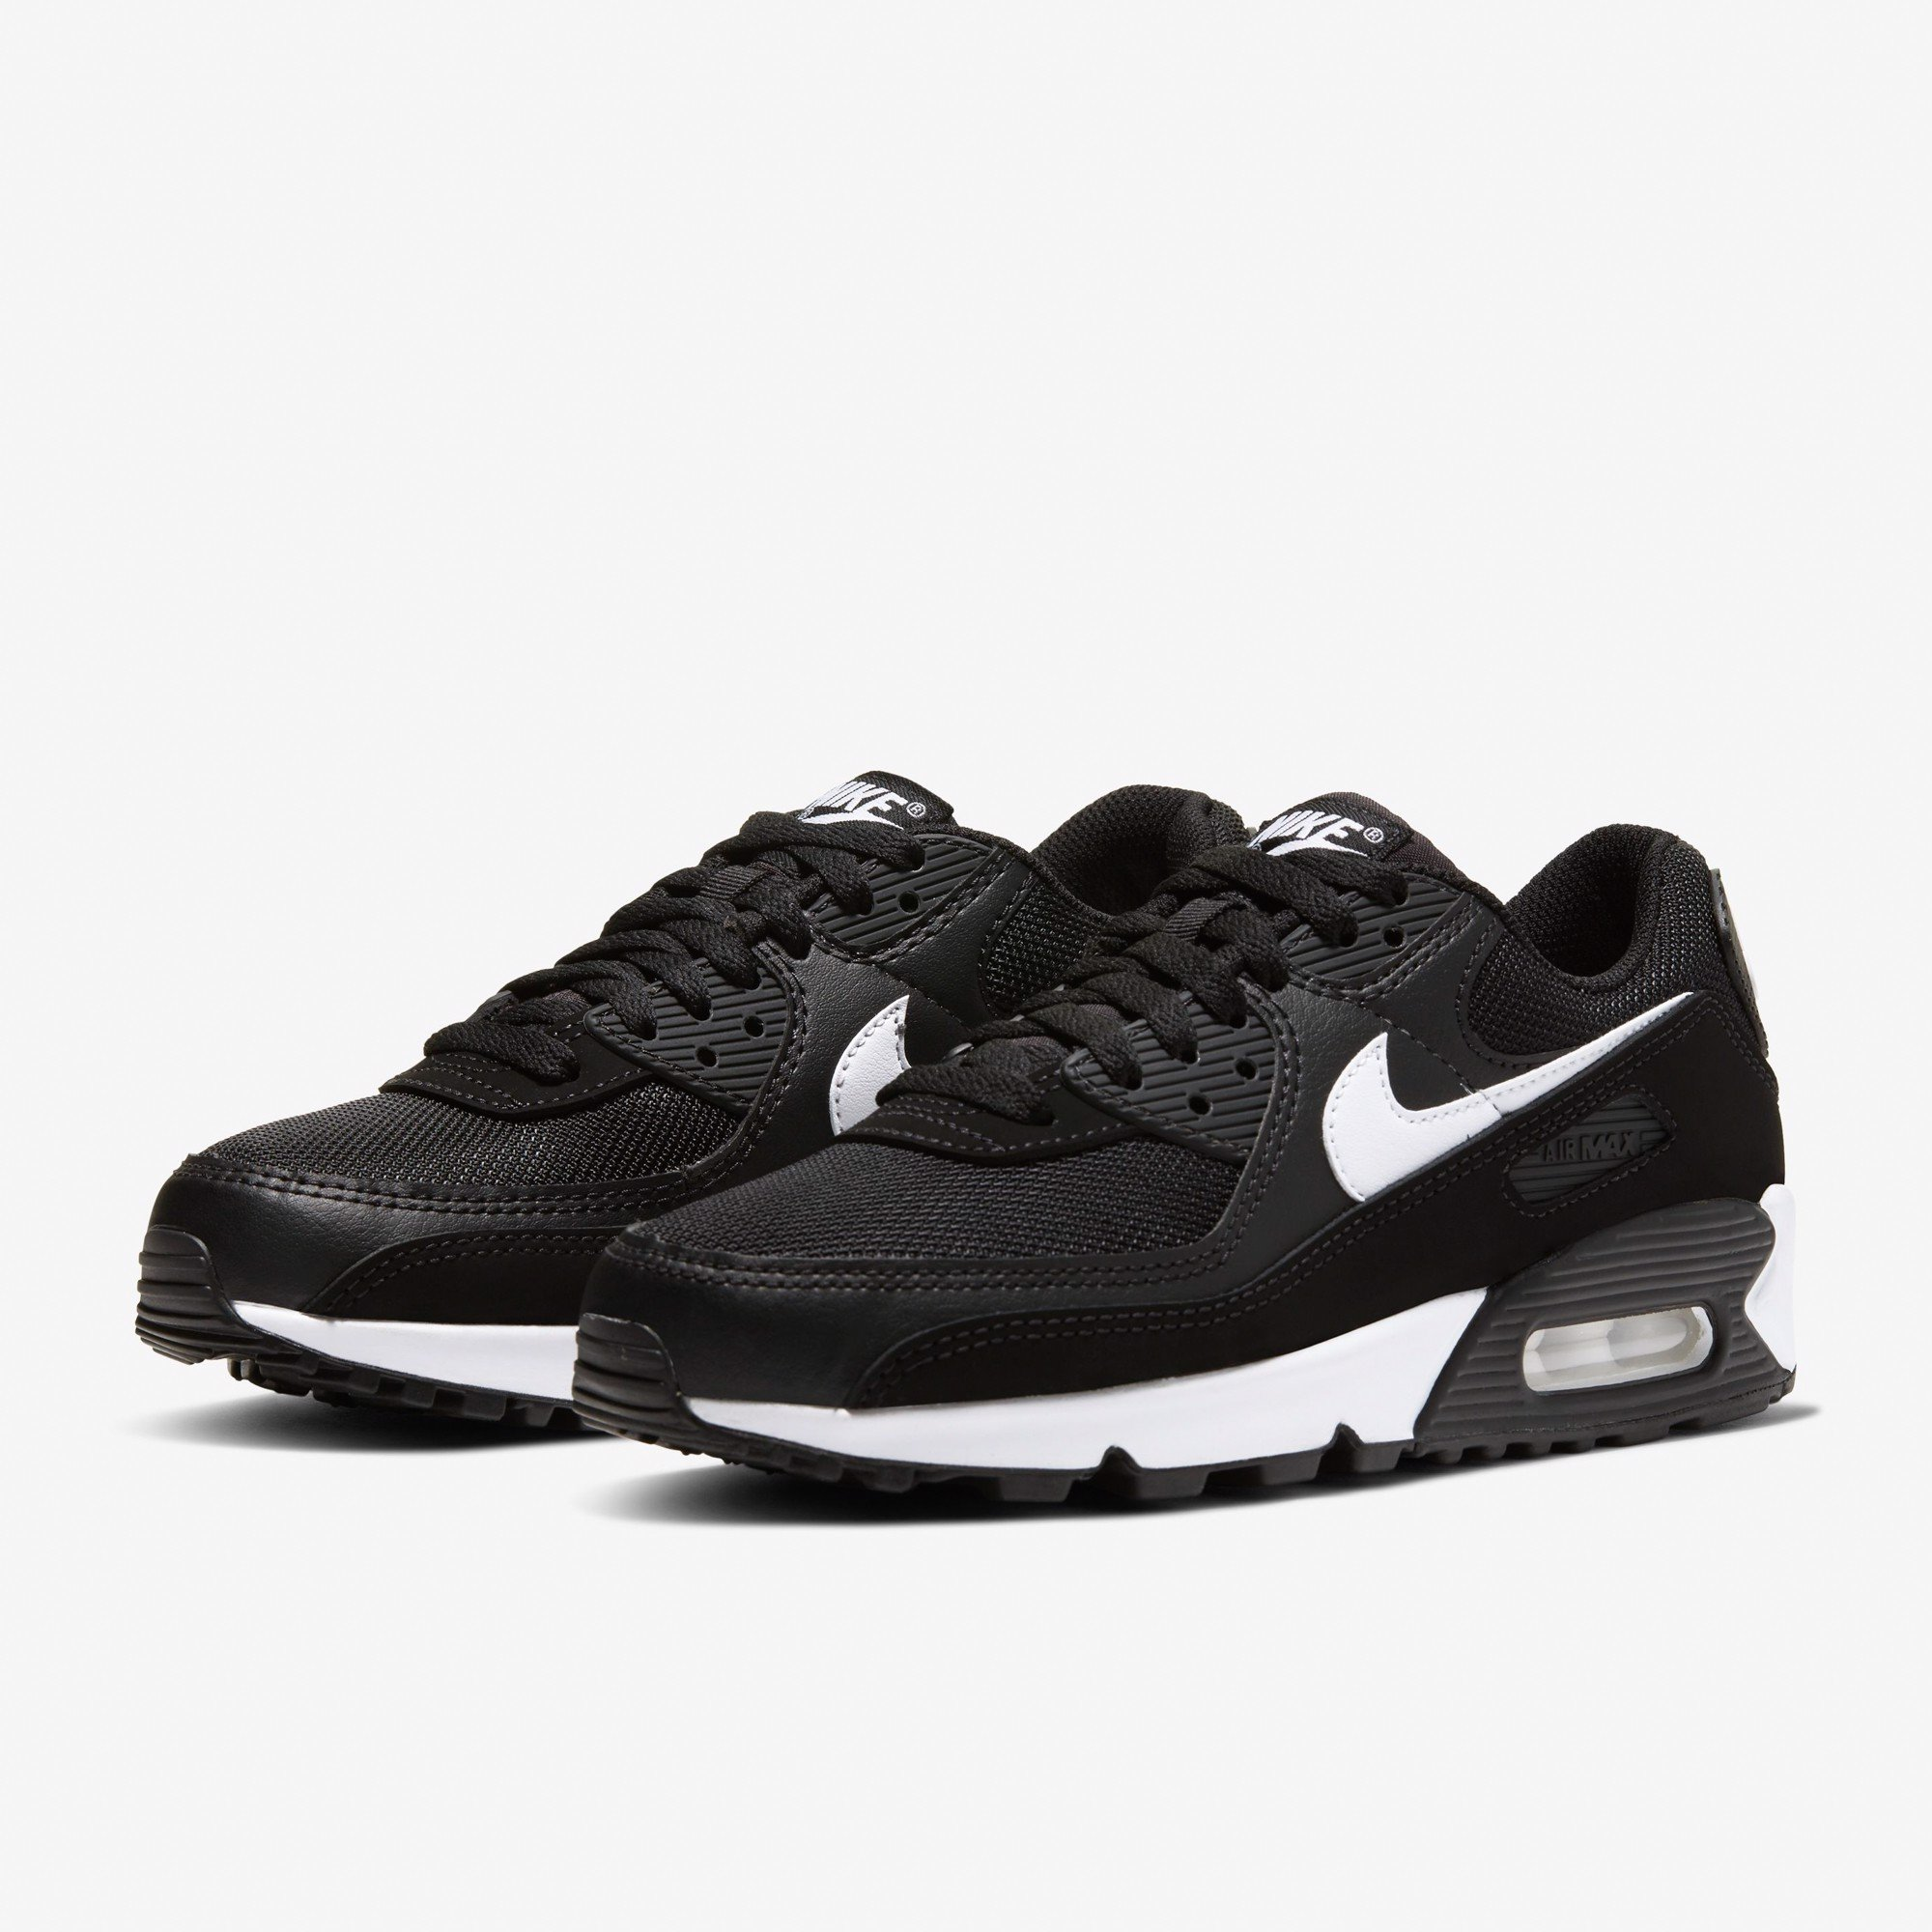 Nike Air Max 90 'Black/White'